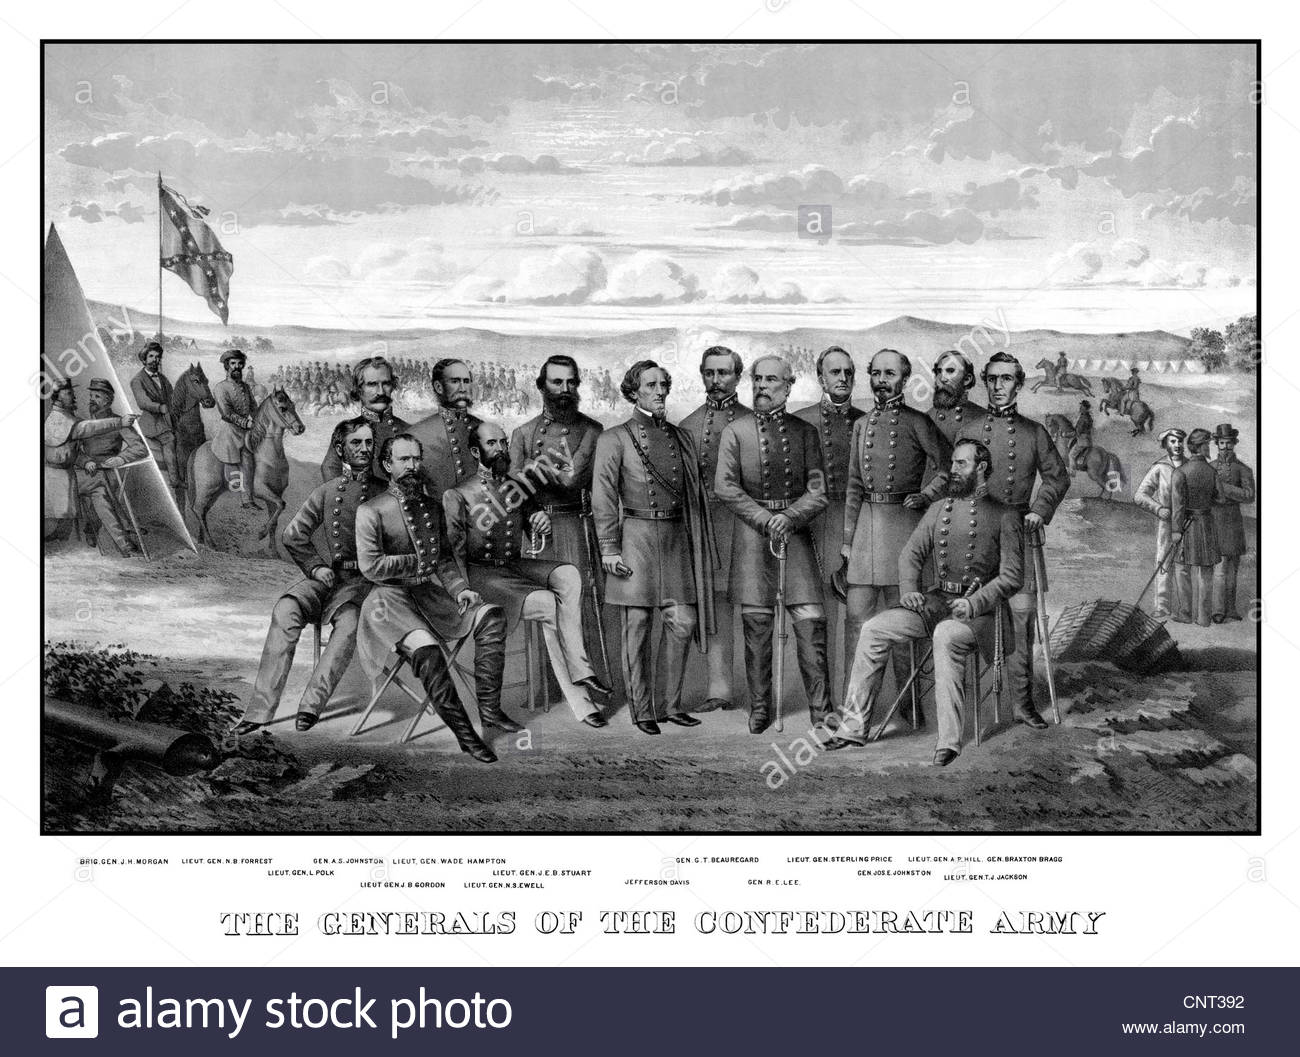 Vintage Civil War print featuring sixteen of The Confederate Army's top Generals in camp, as troops move in - Stock Image